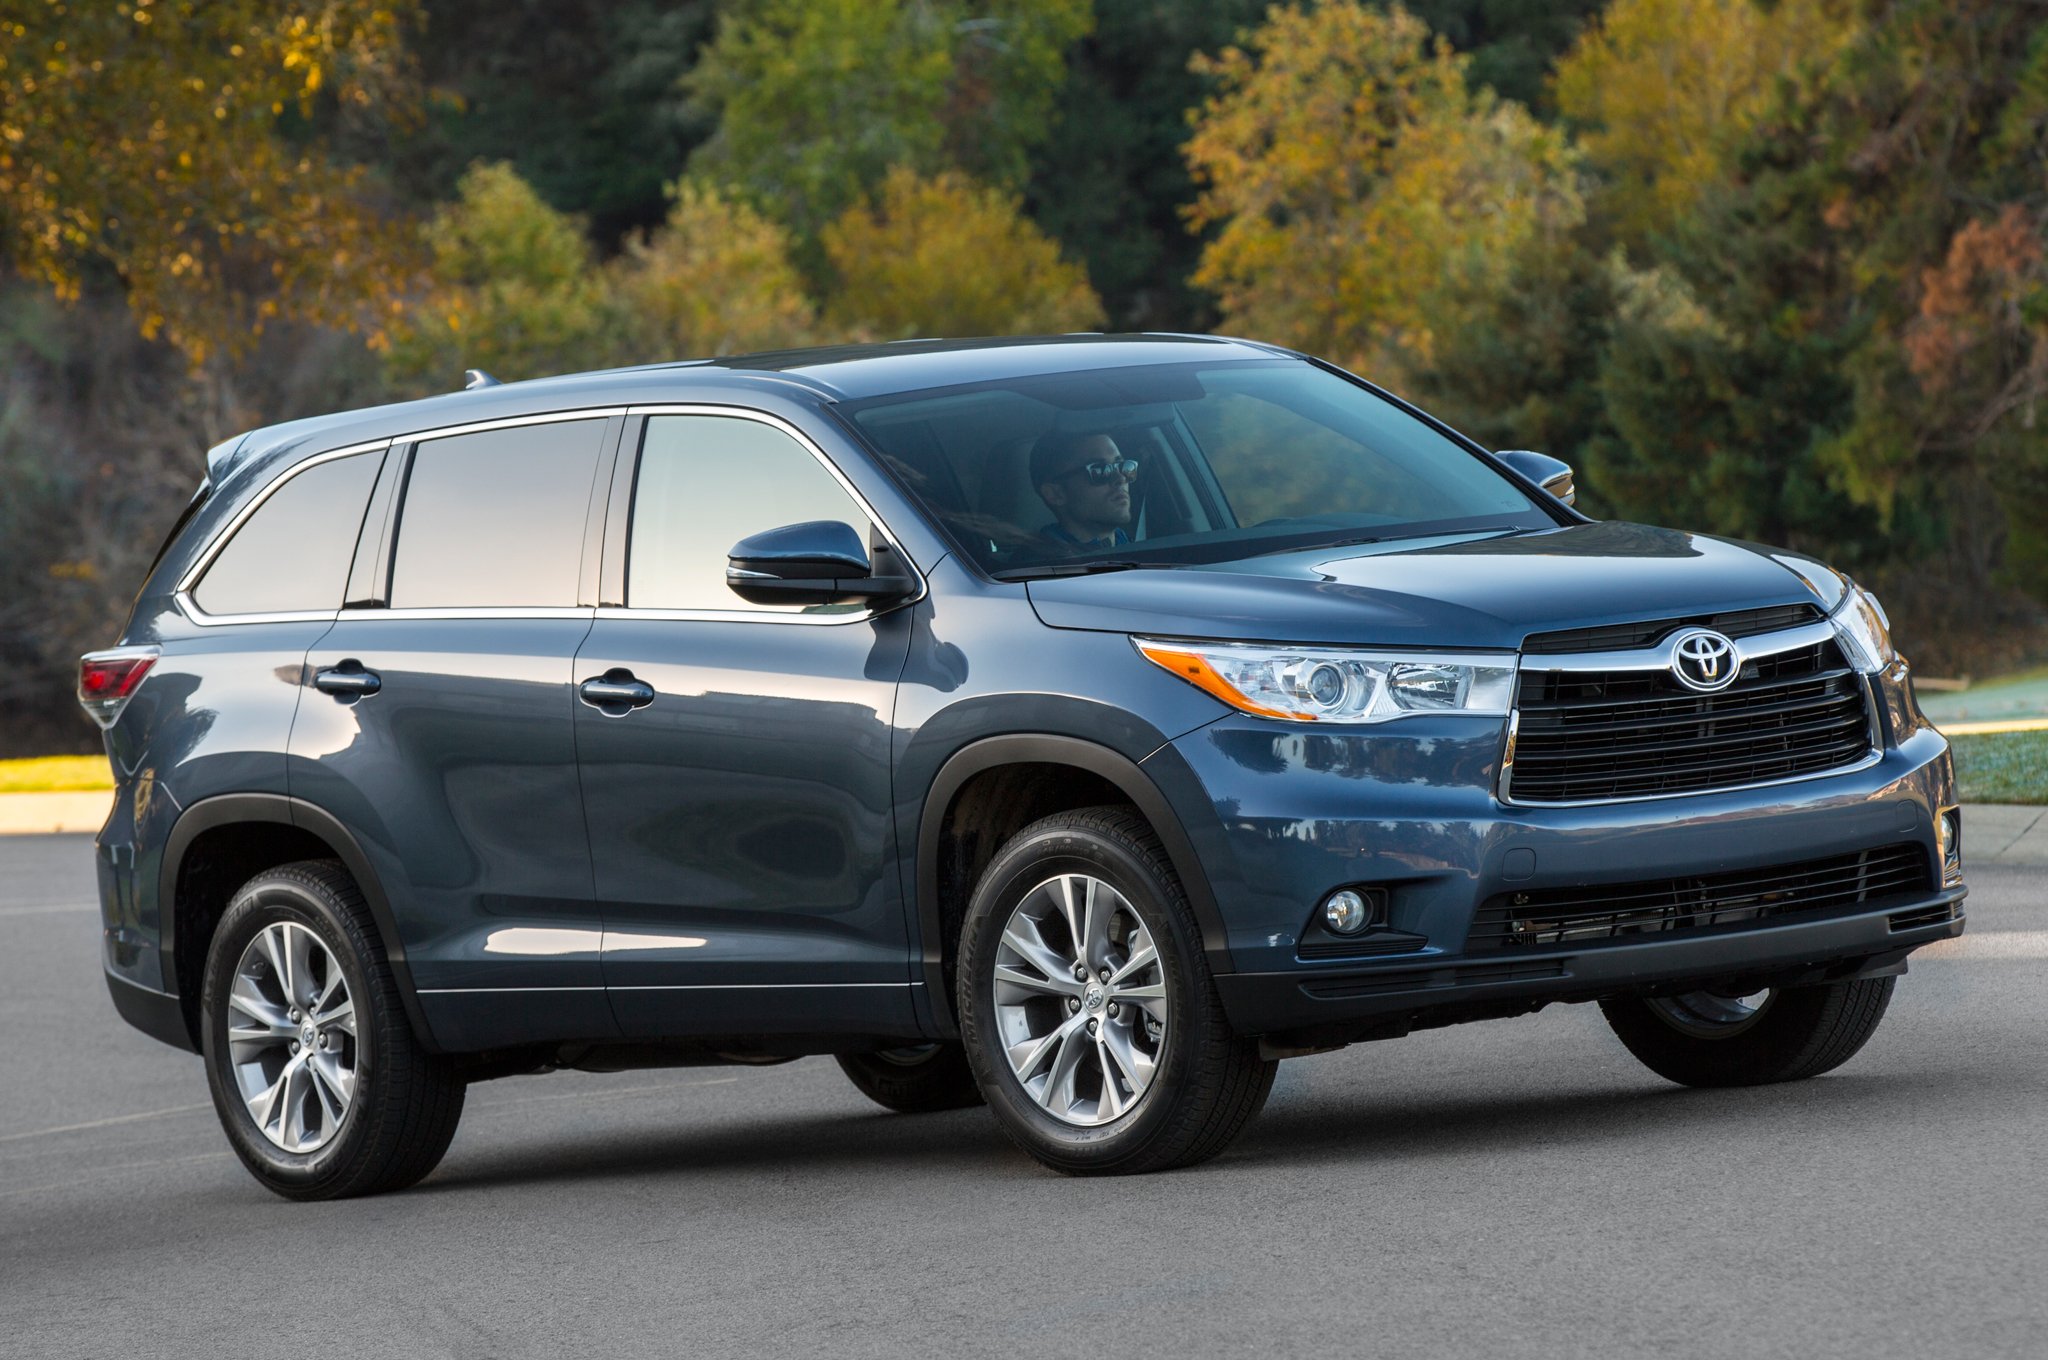 small resolution of 2014 toyota highlander recalled for problem with seat belt motor trend rh motortrend com 2014 toyota